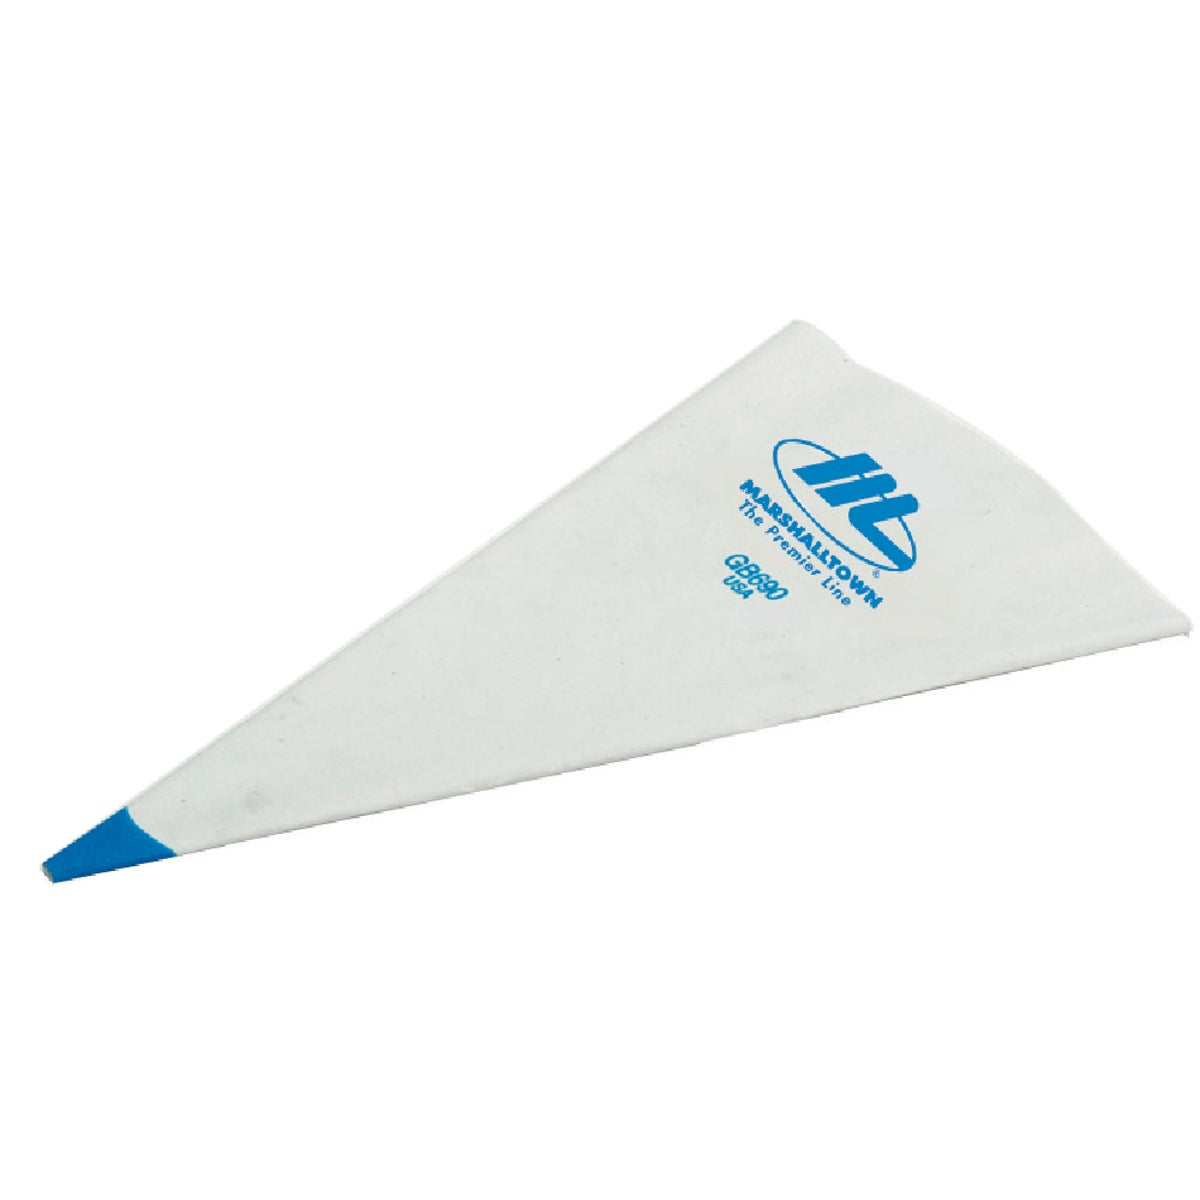 GB690 BLU-TIP GROUT BAG - 17816 by Marshalltown Trowel